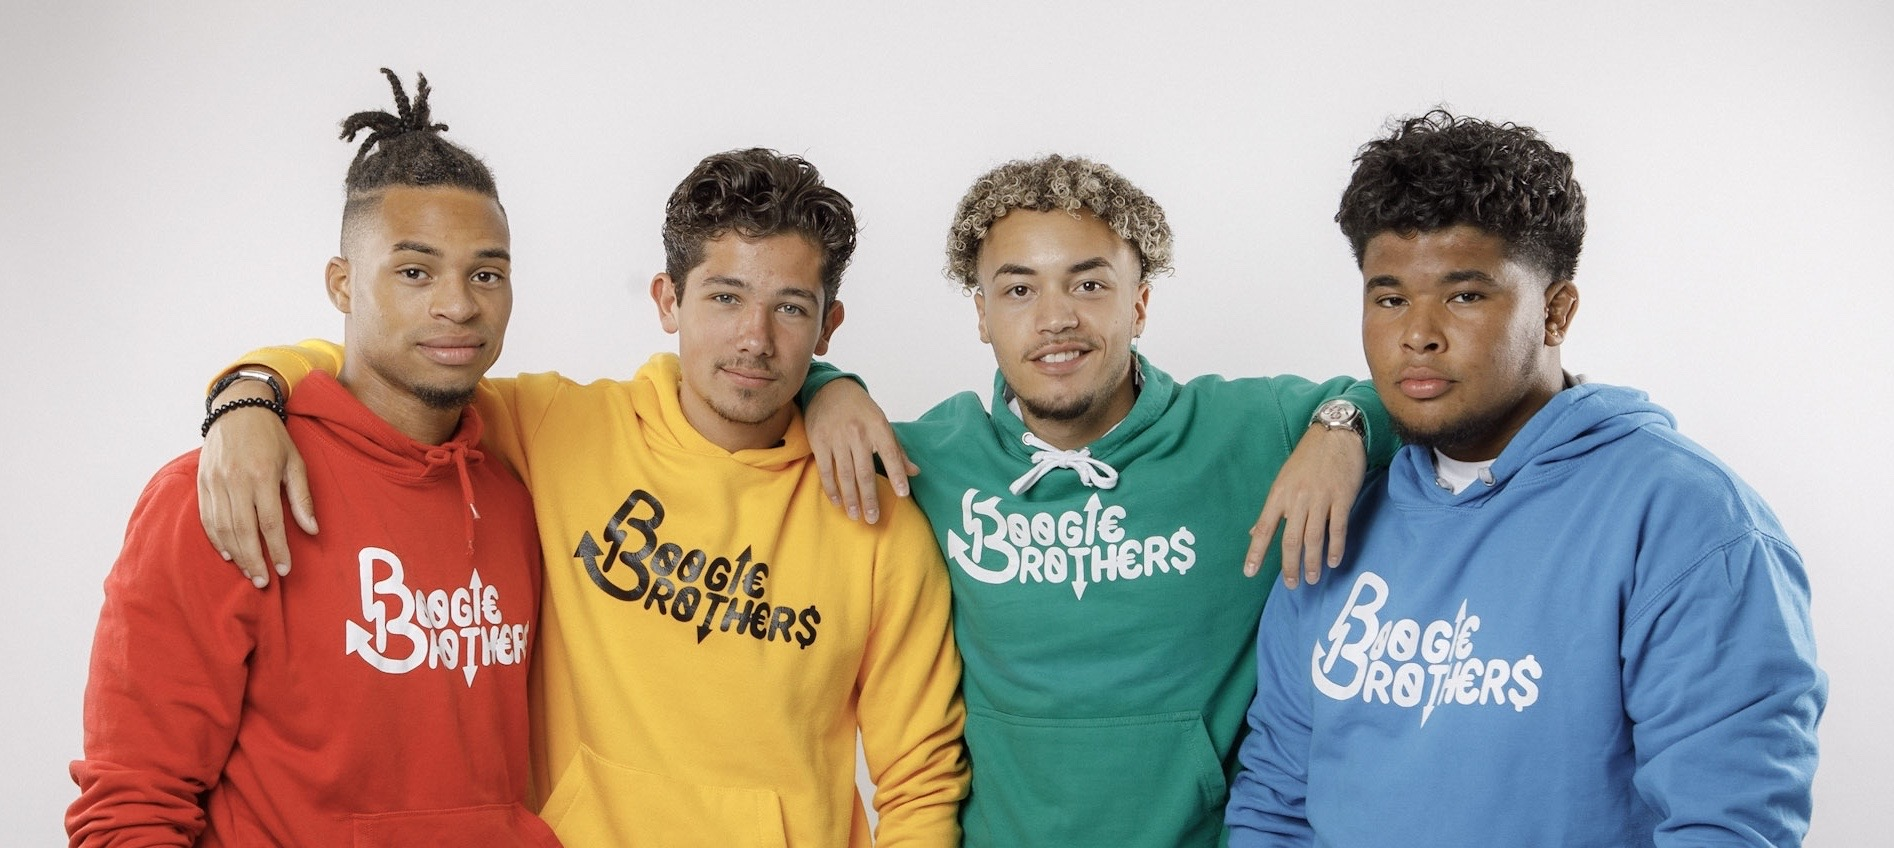 The Boogie Brothers